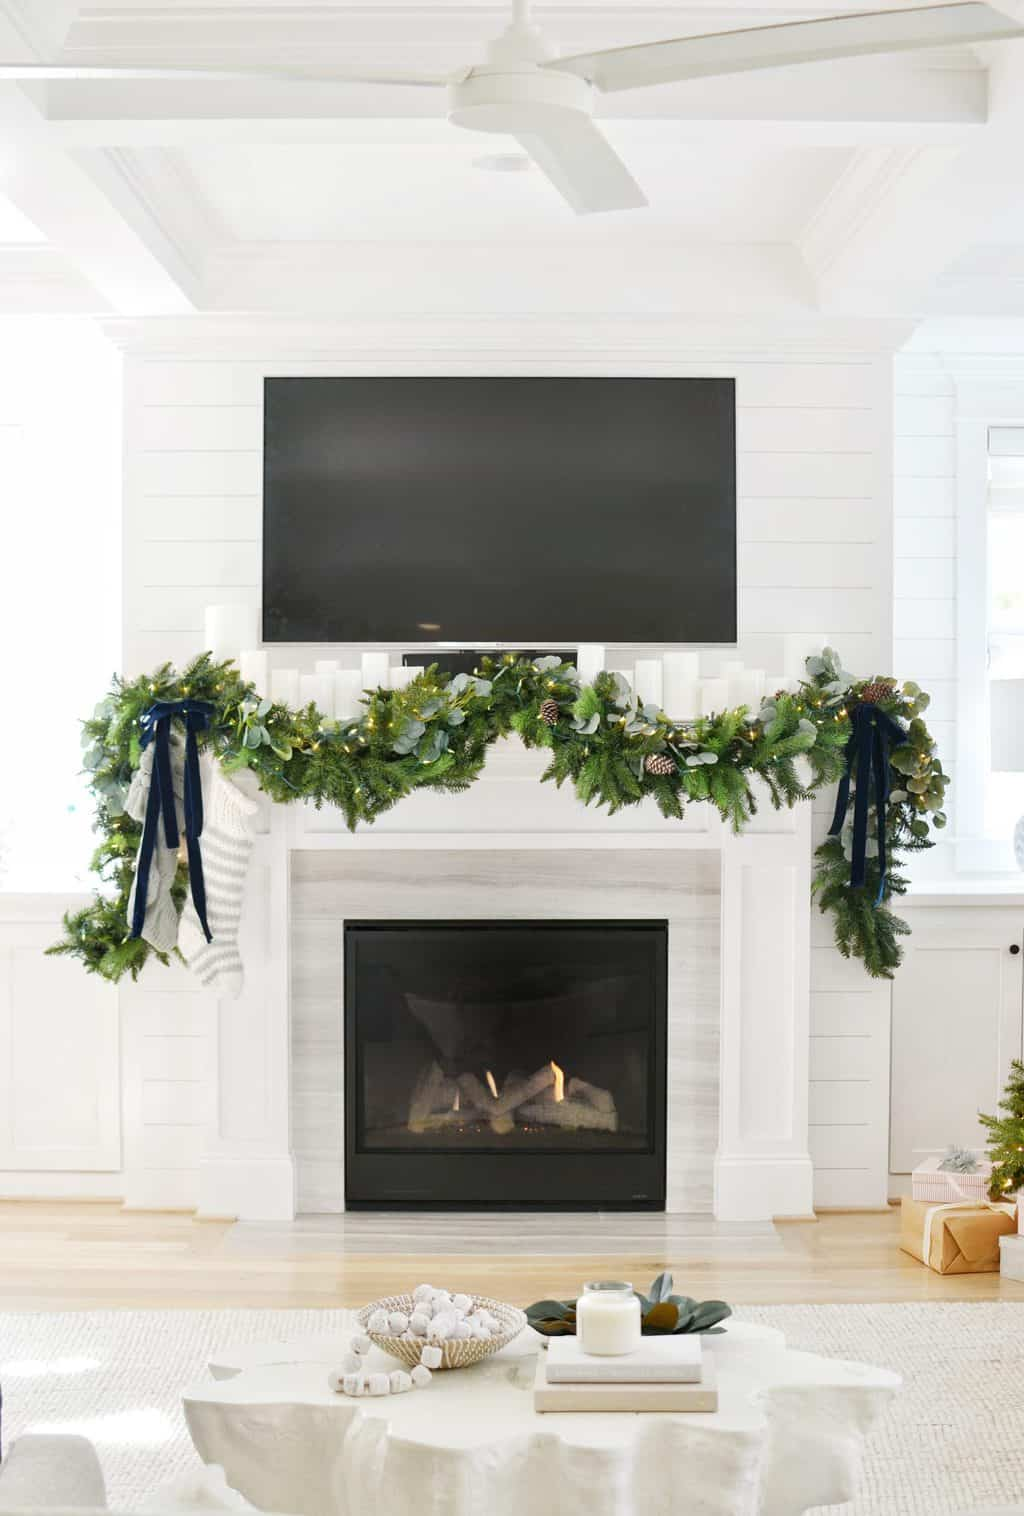 Christmas Garland in front of fireplace